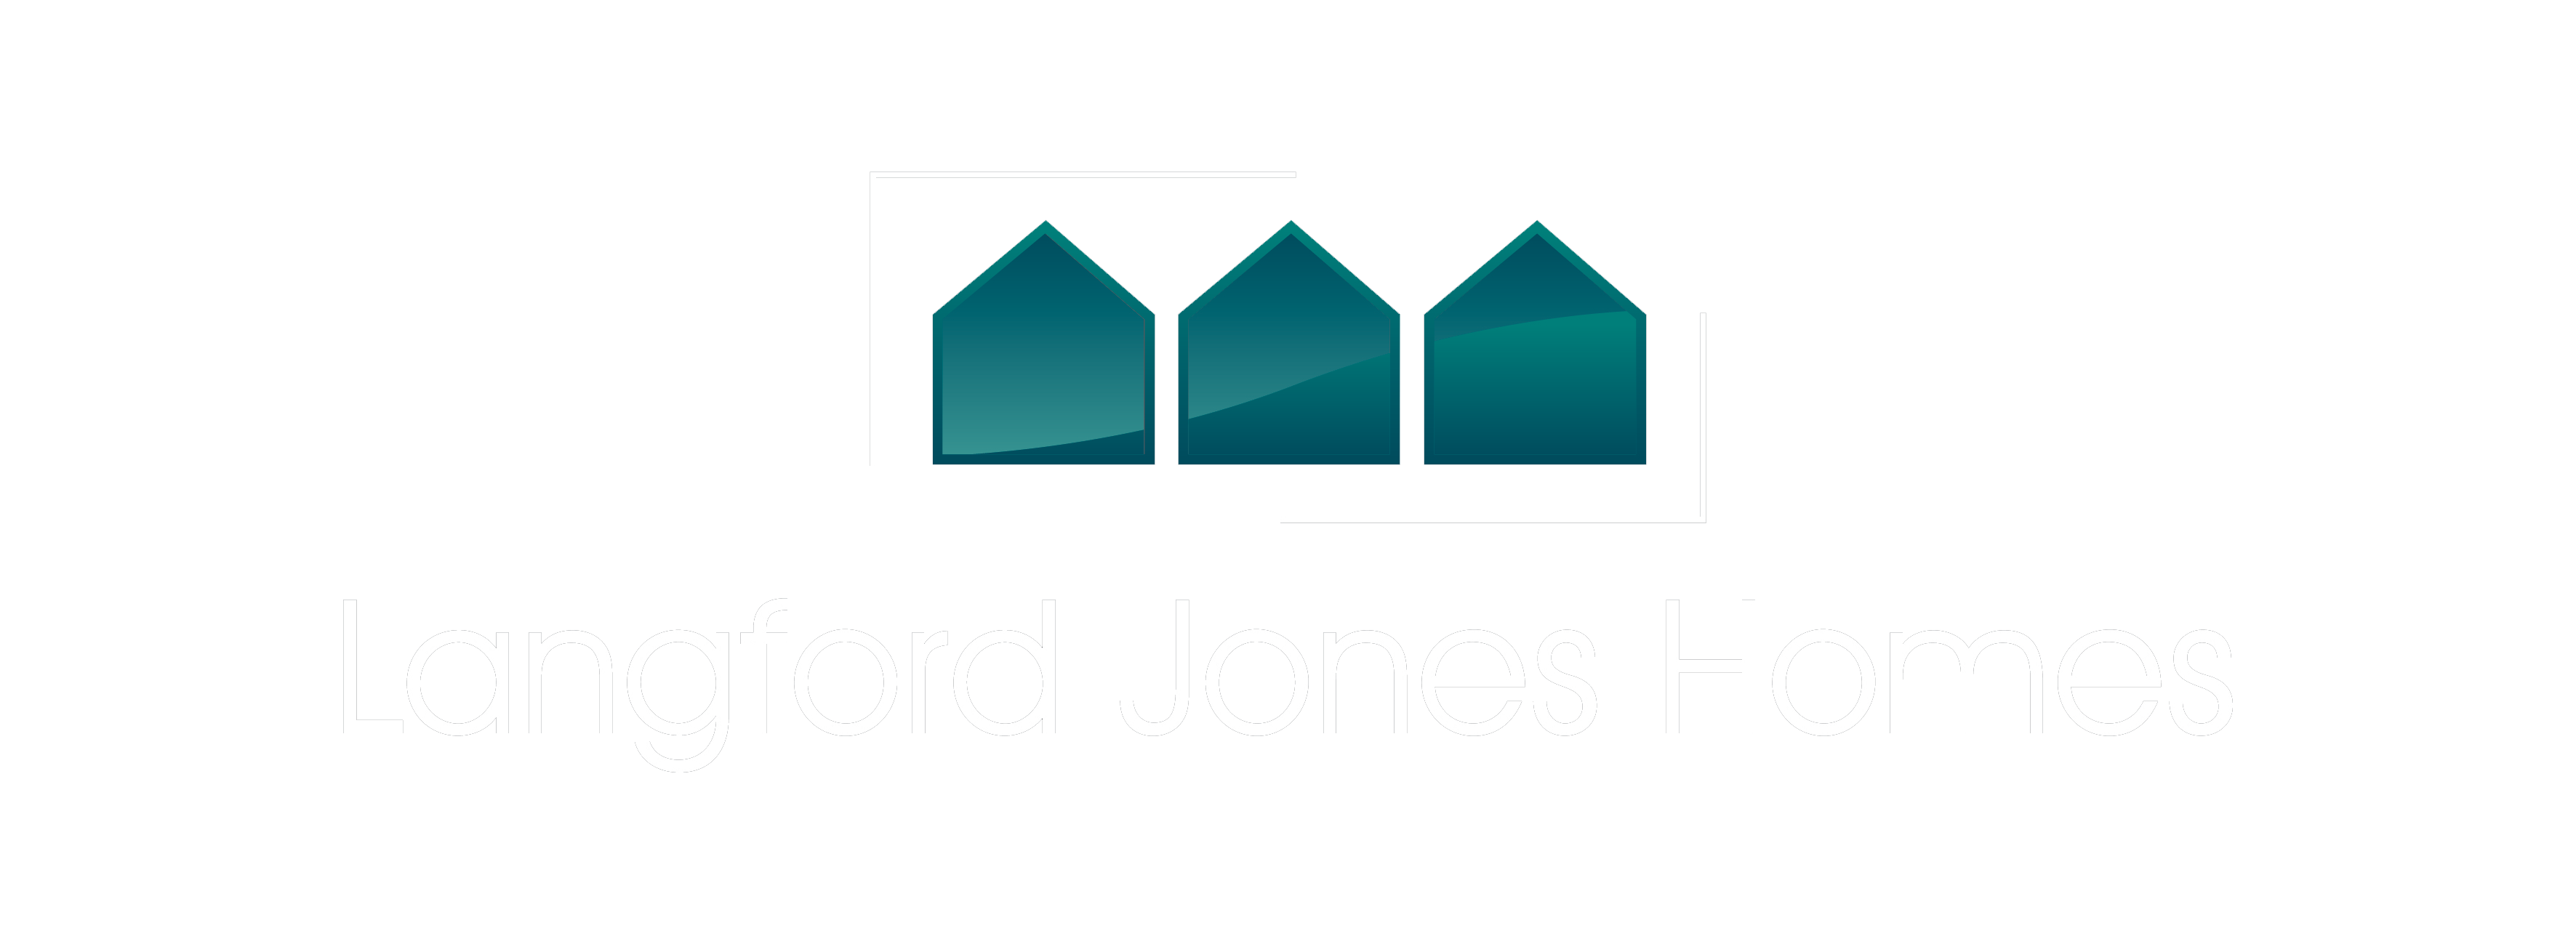 Langford Joners Homes